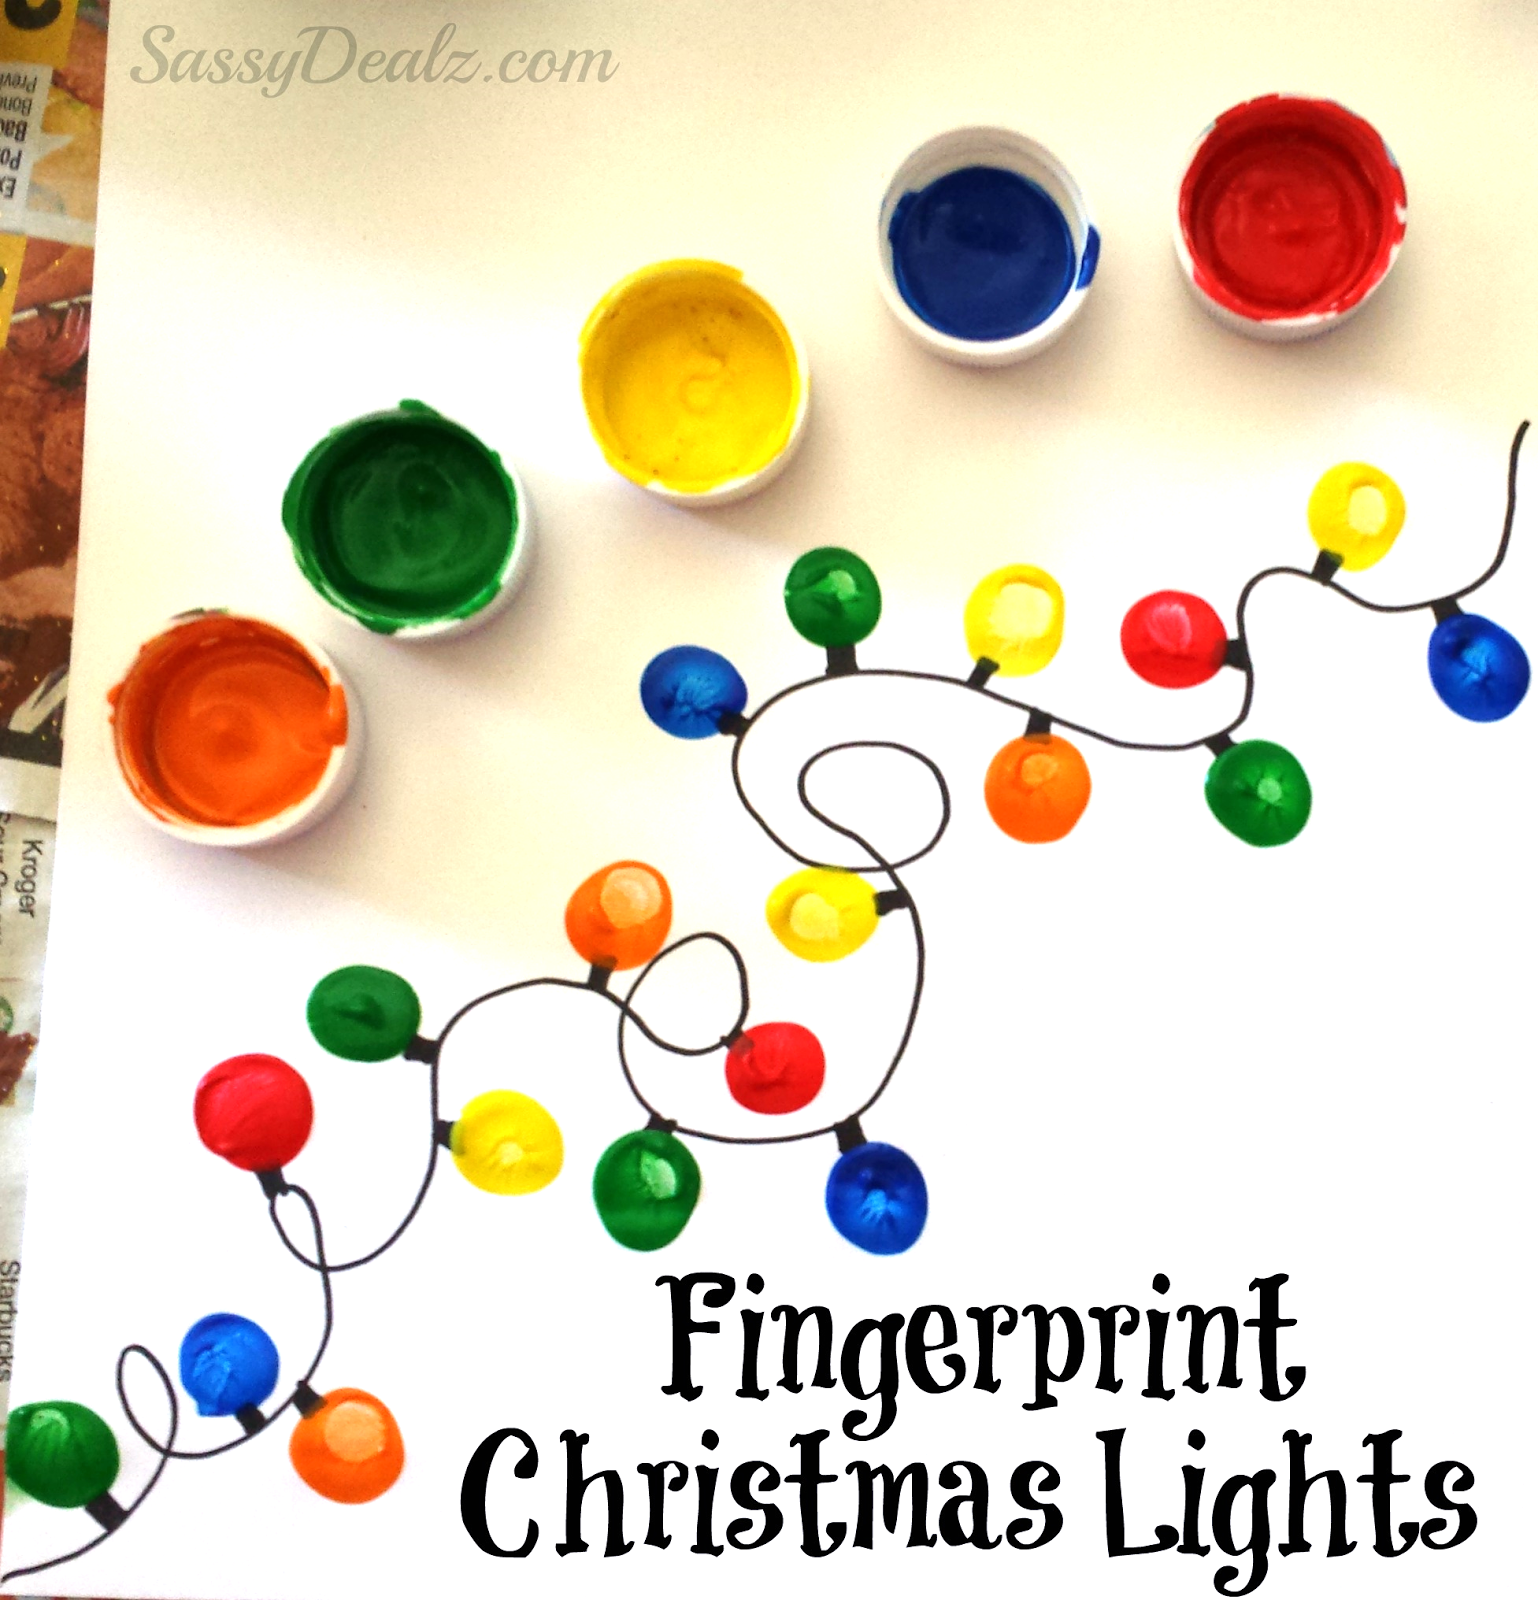 Baby's Fingerprint Christmas Lights from Crafty Morning